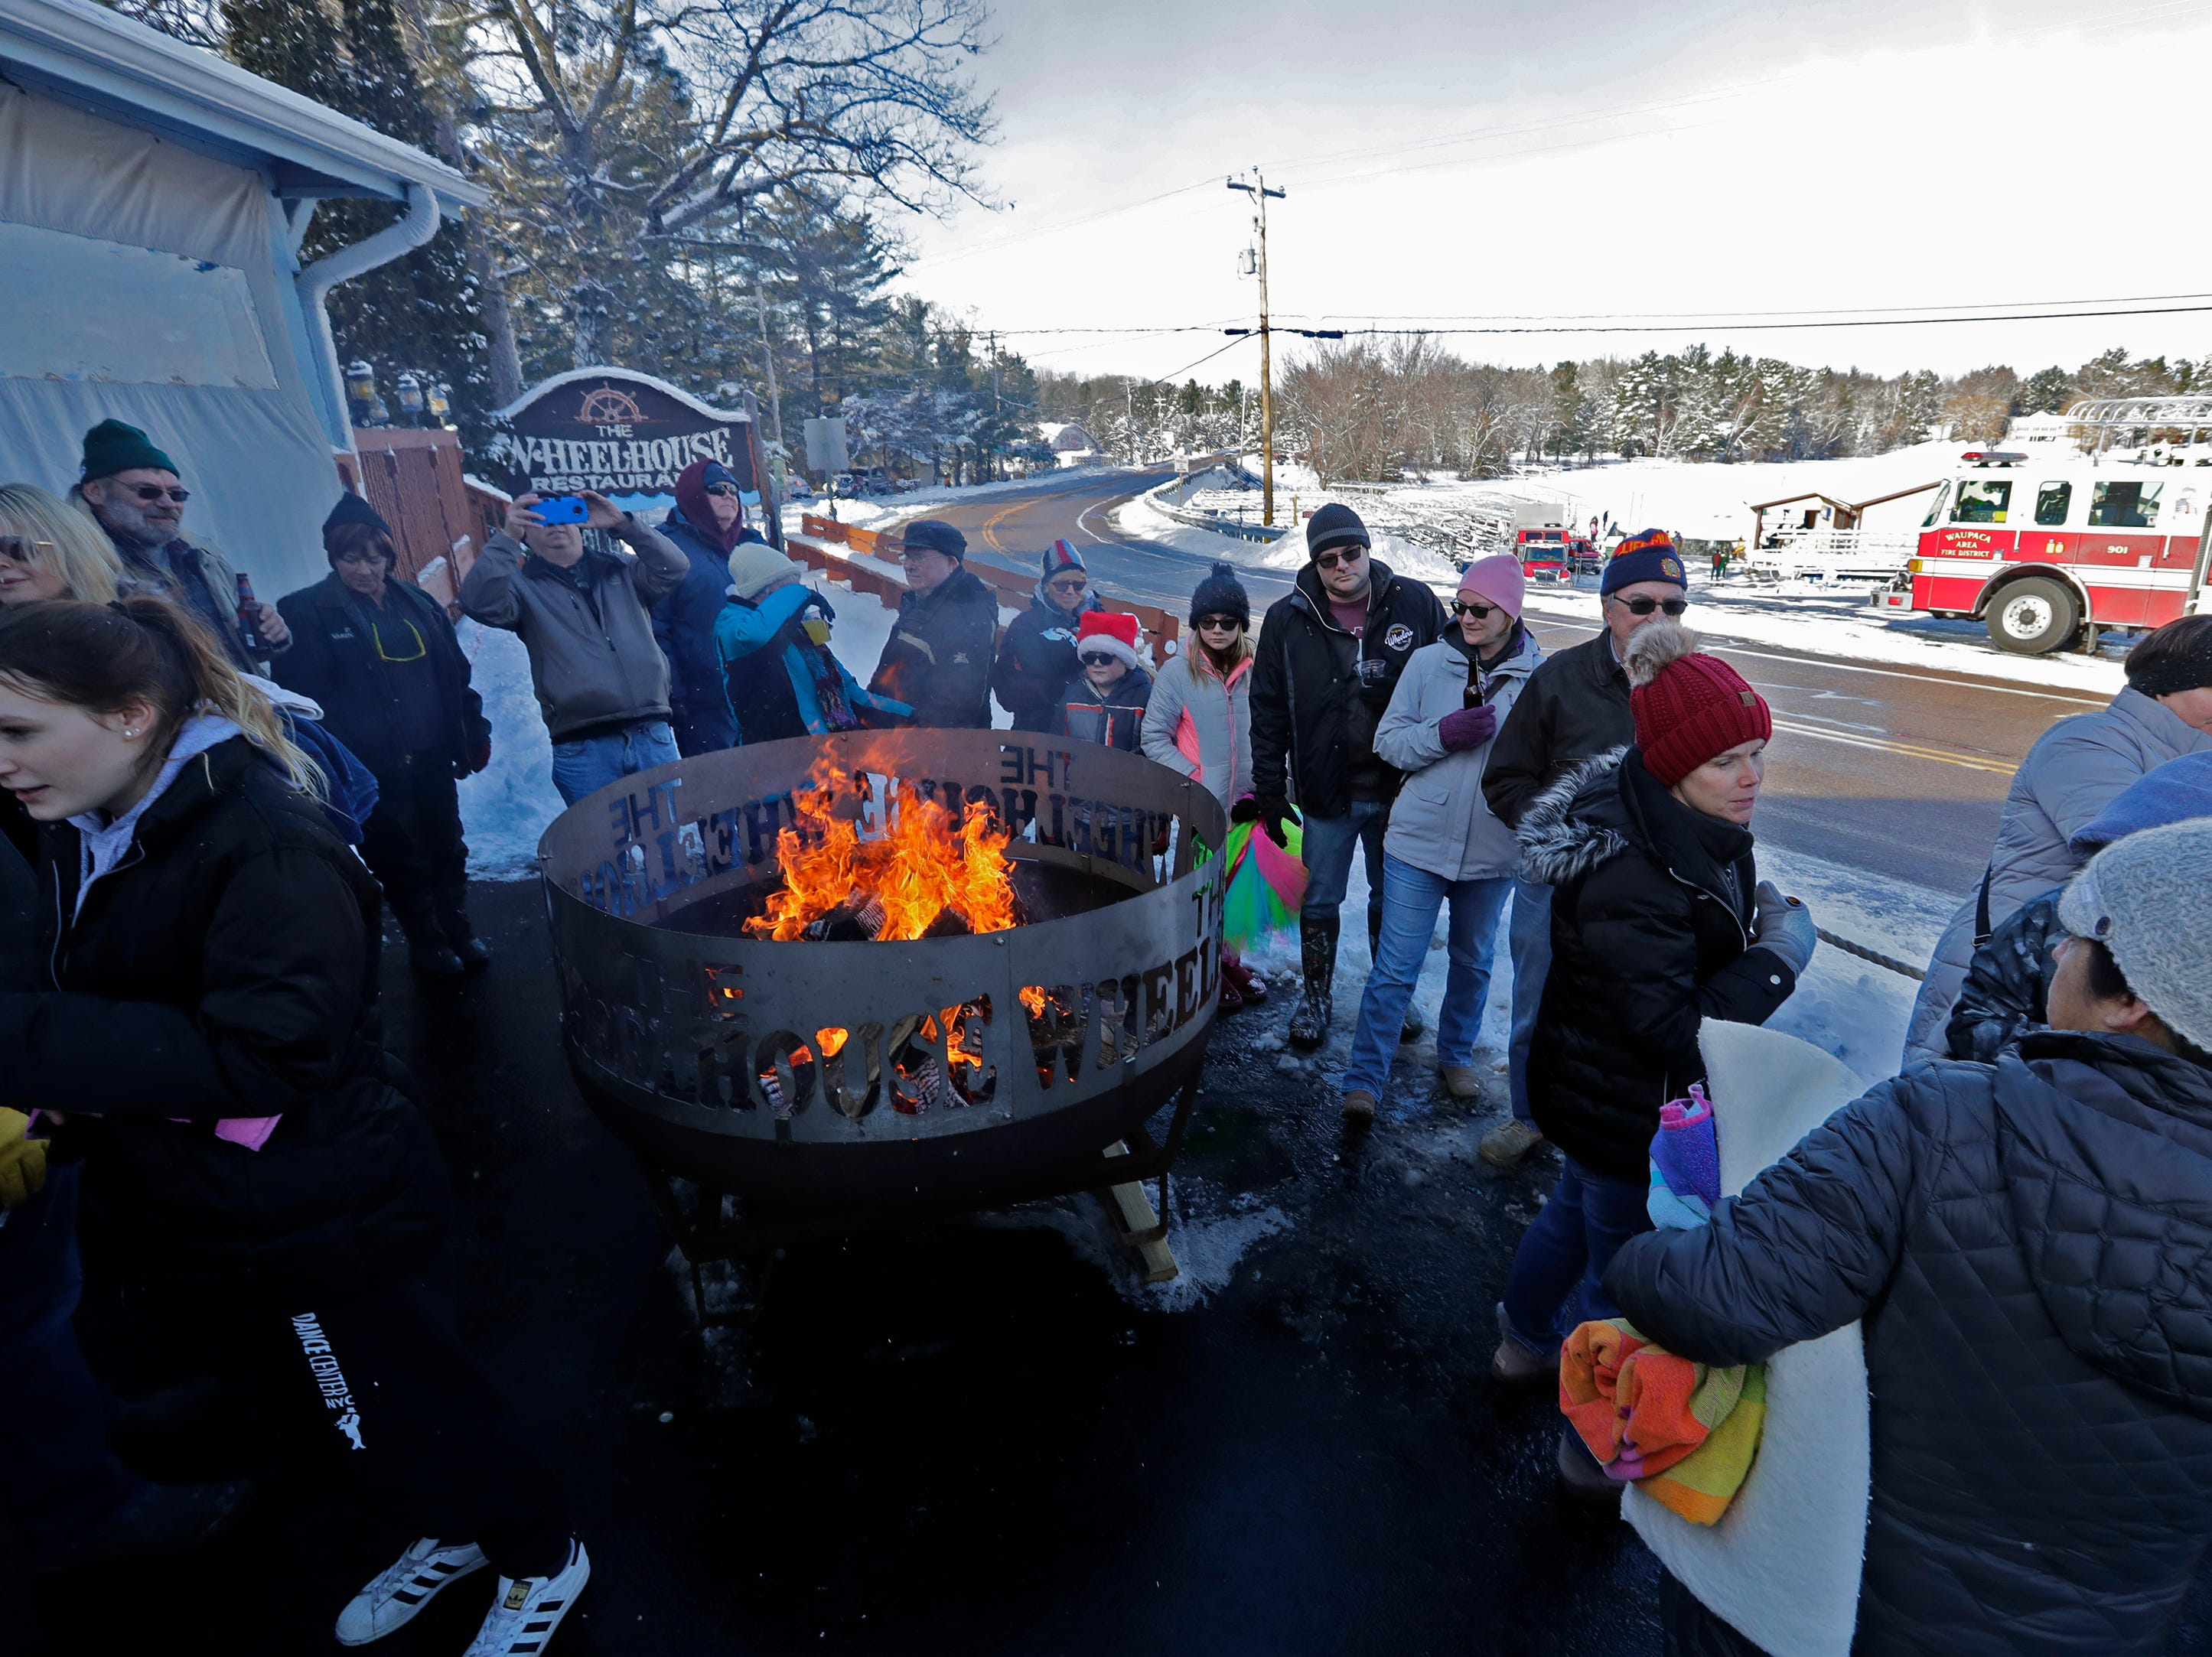 The Wheelhouse Restaurant is full of activity during the Polar Bear Plunge Tuesday, January 1, 2019, at Becker Marine on Lime Kiln Lake in Waupaca, Wis. Dan Powers/USA TODAY NETWORK-Wisconsin